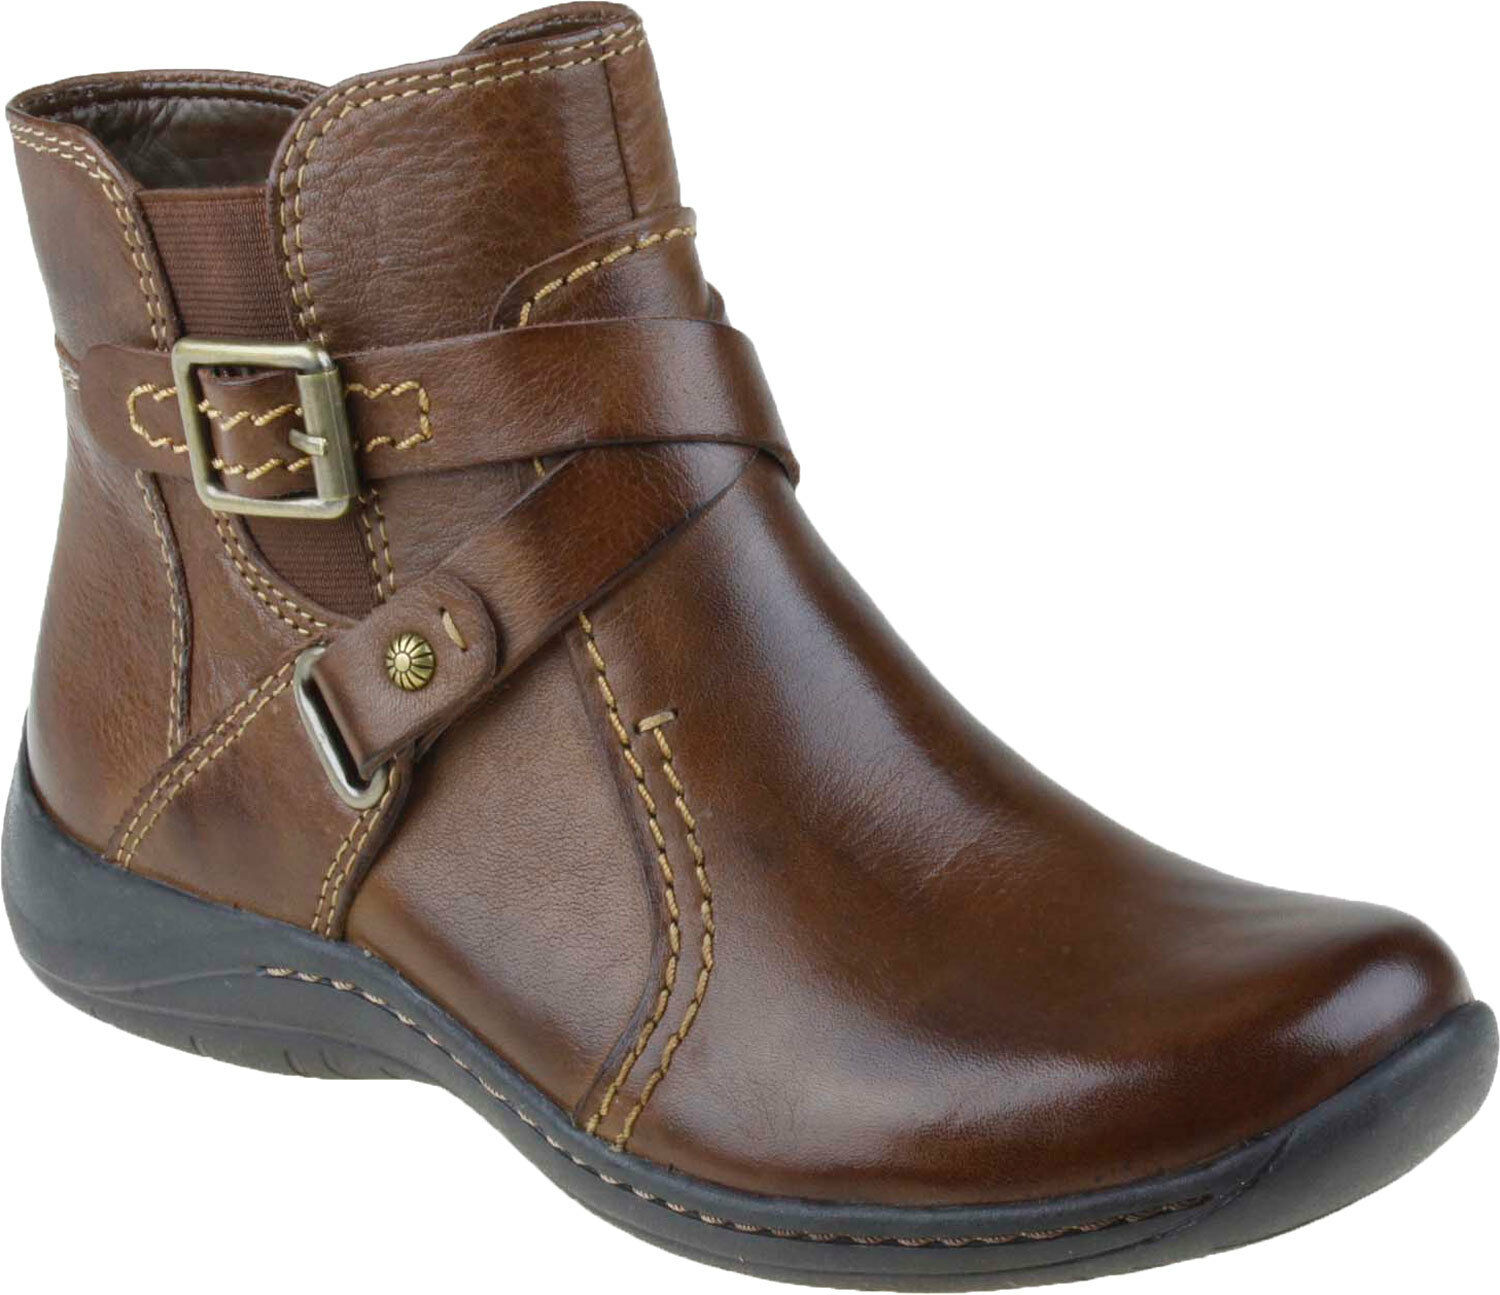 Earth Women's Ironwood Leather Ankle Boots w  Buckle Detail in Bark Size 7B